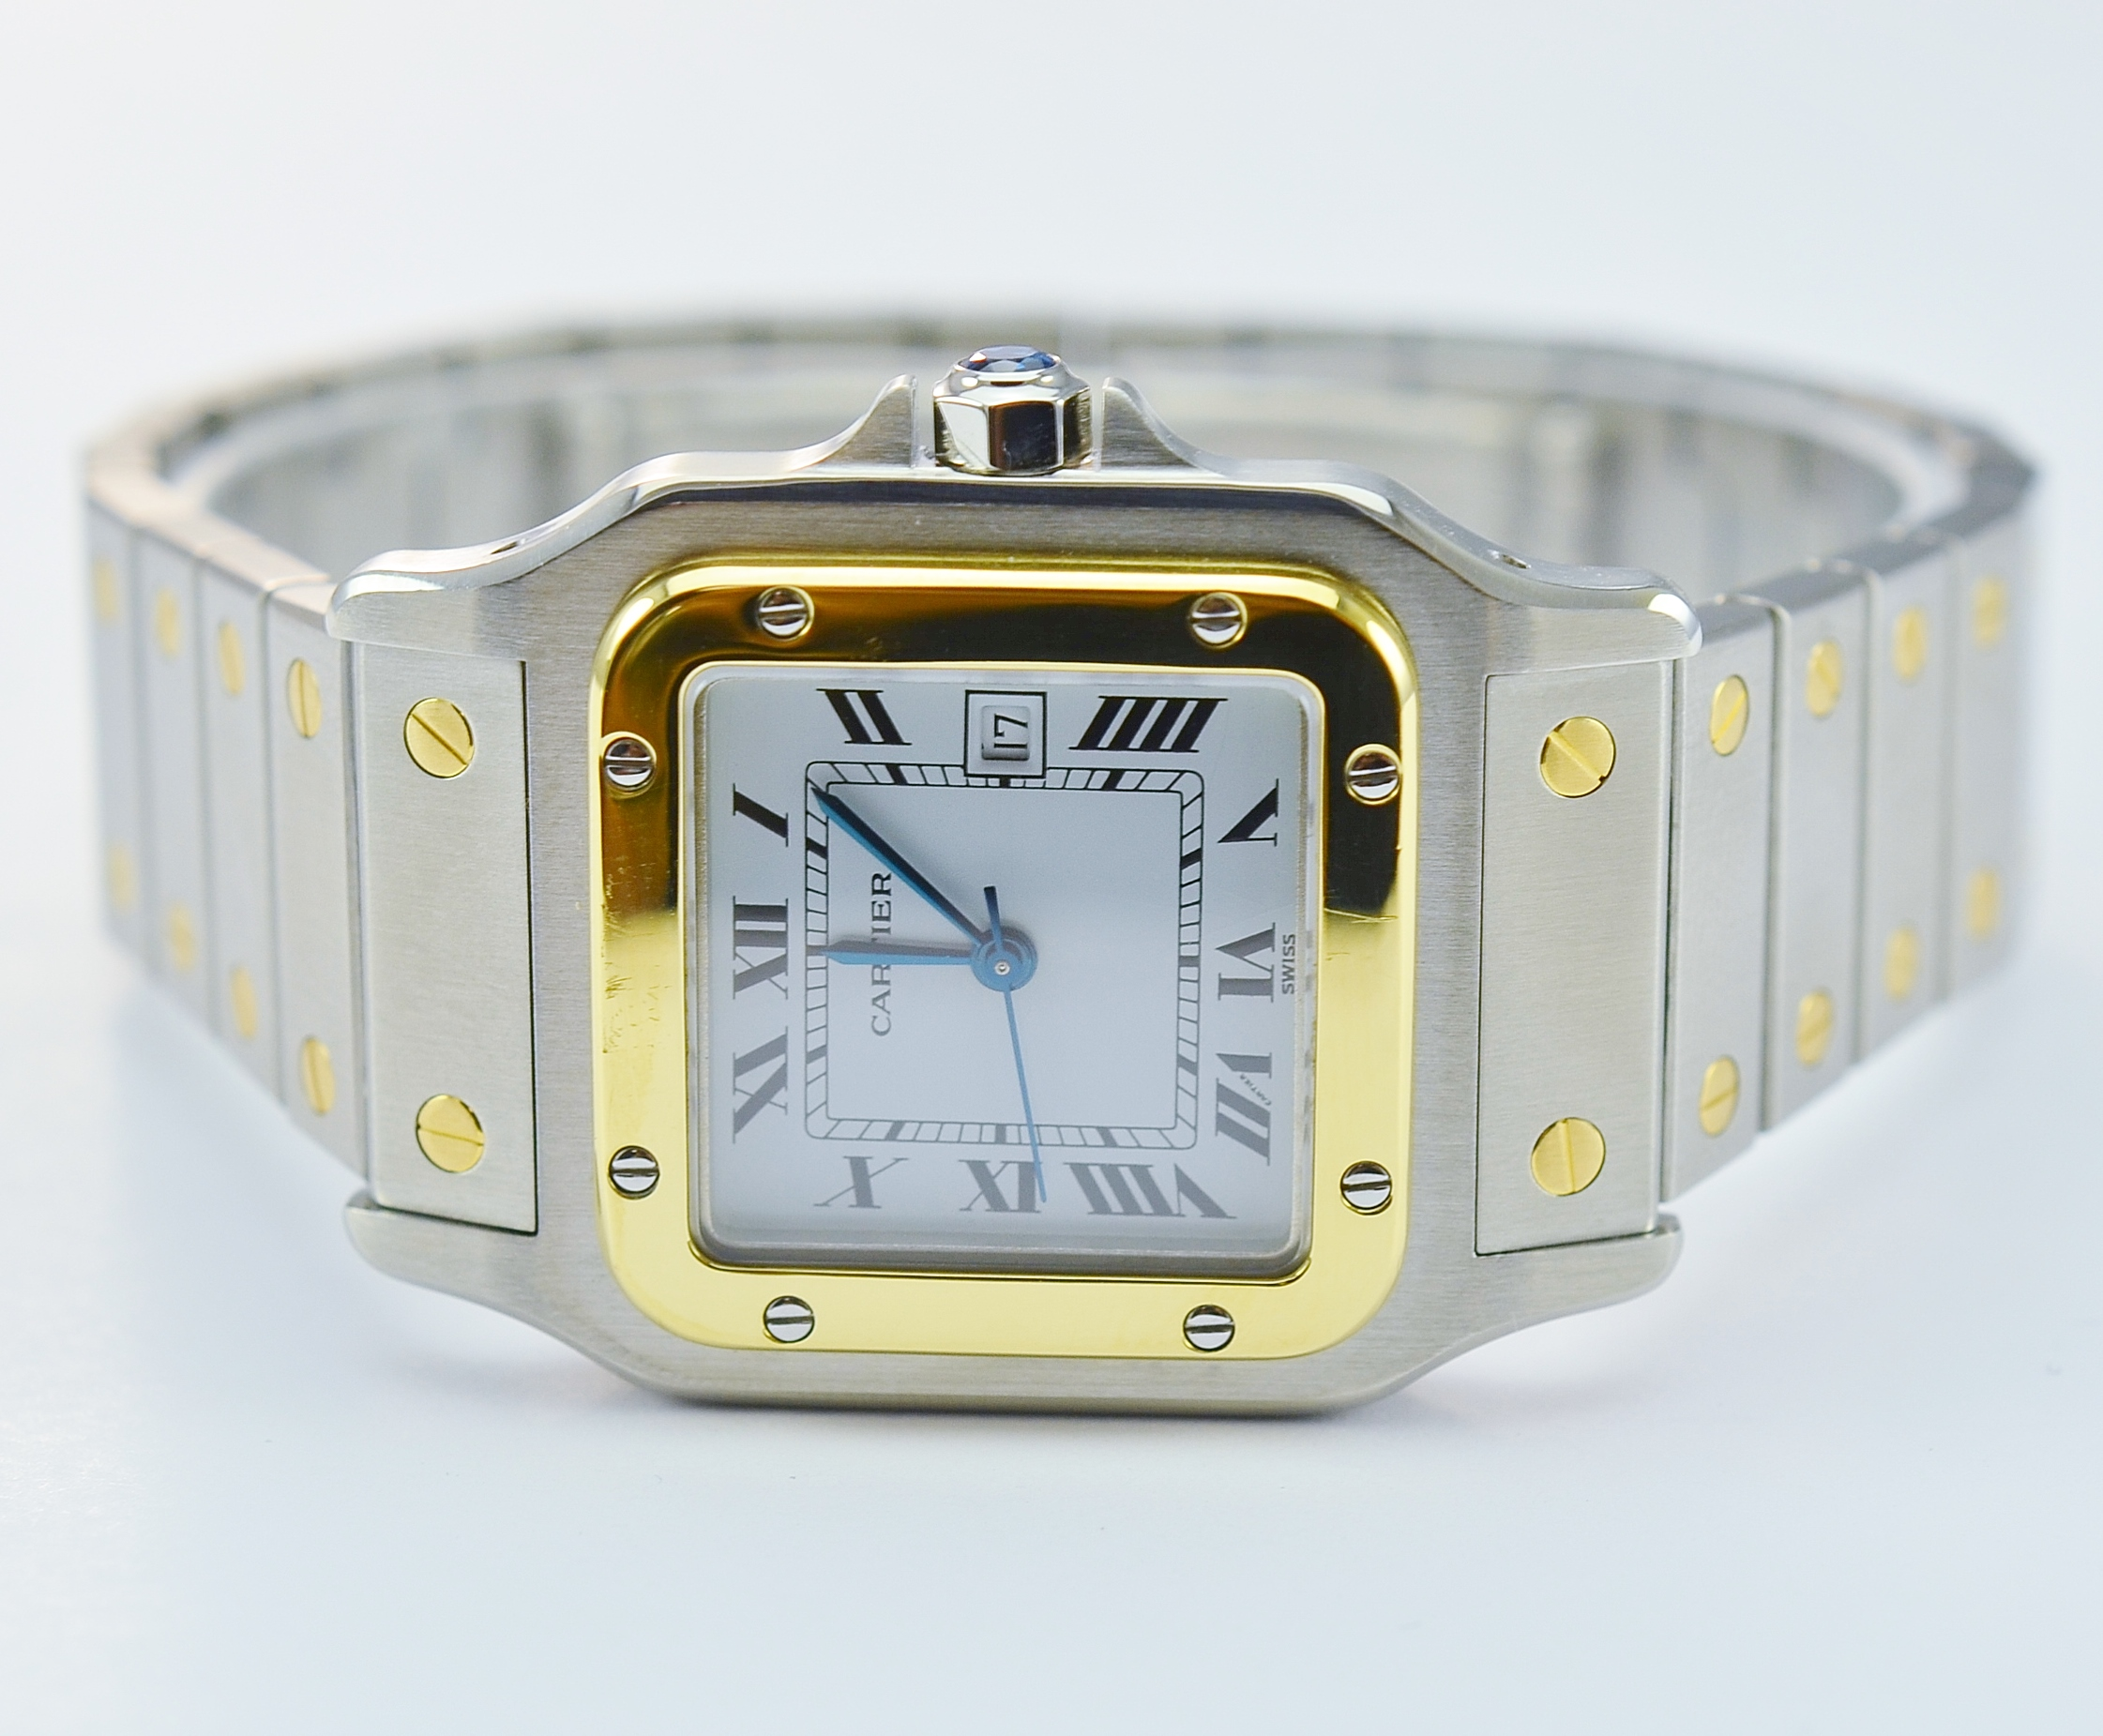 92b448510ca6 Image 1 of 8. Cartier Santos 1567 2T Stainless Steel and 18K Gold ...